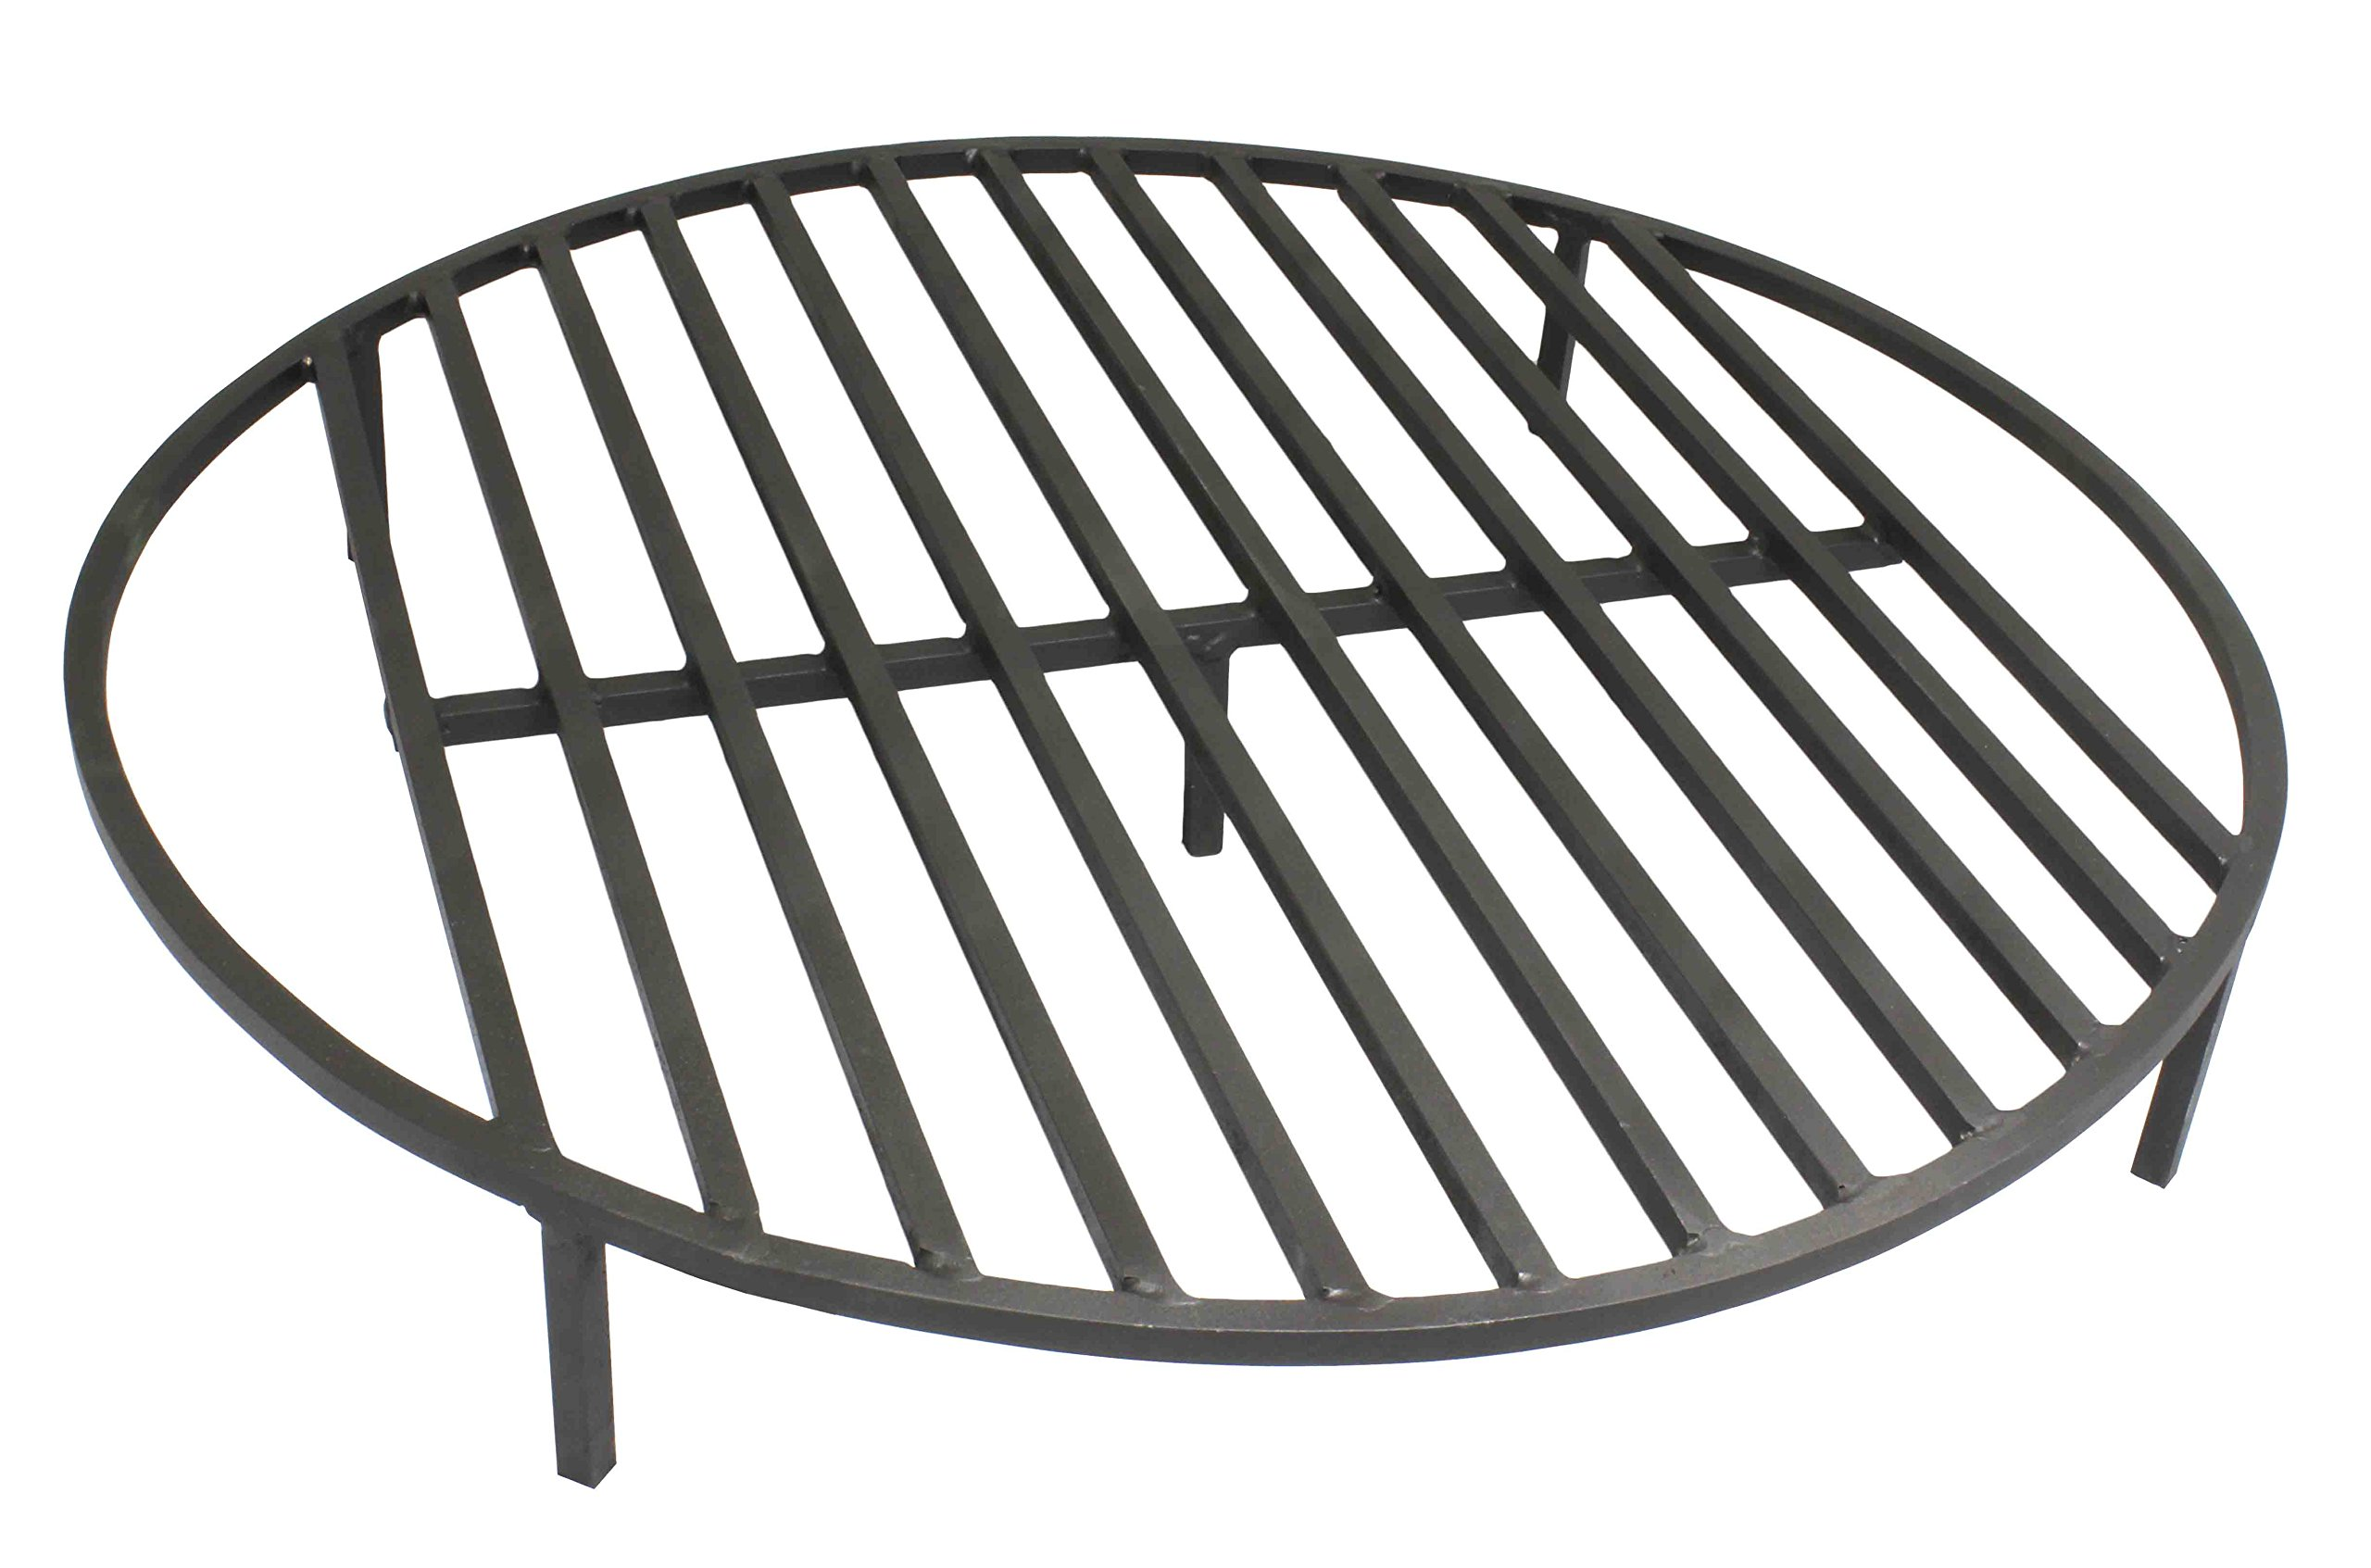 """TITAN GREAT OUTDOORS Round Fire Pit Grate 30'' Heavy Duty Grill Cooking Campfire Camp Ring 1/2"""" Steel"""